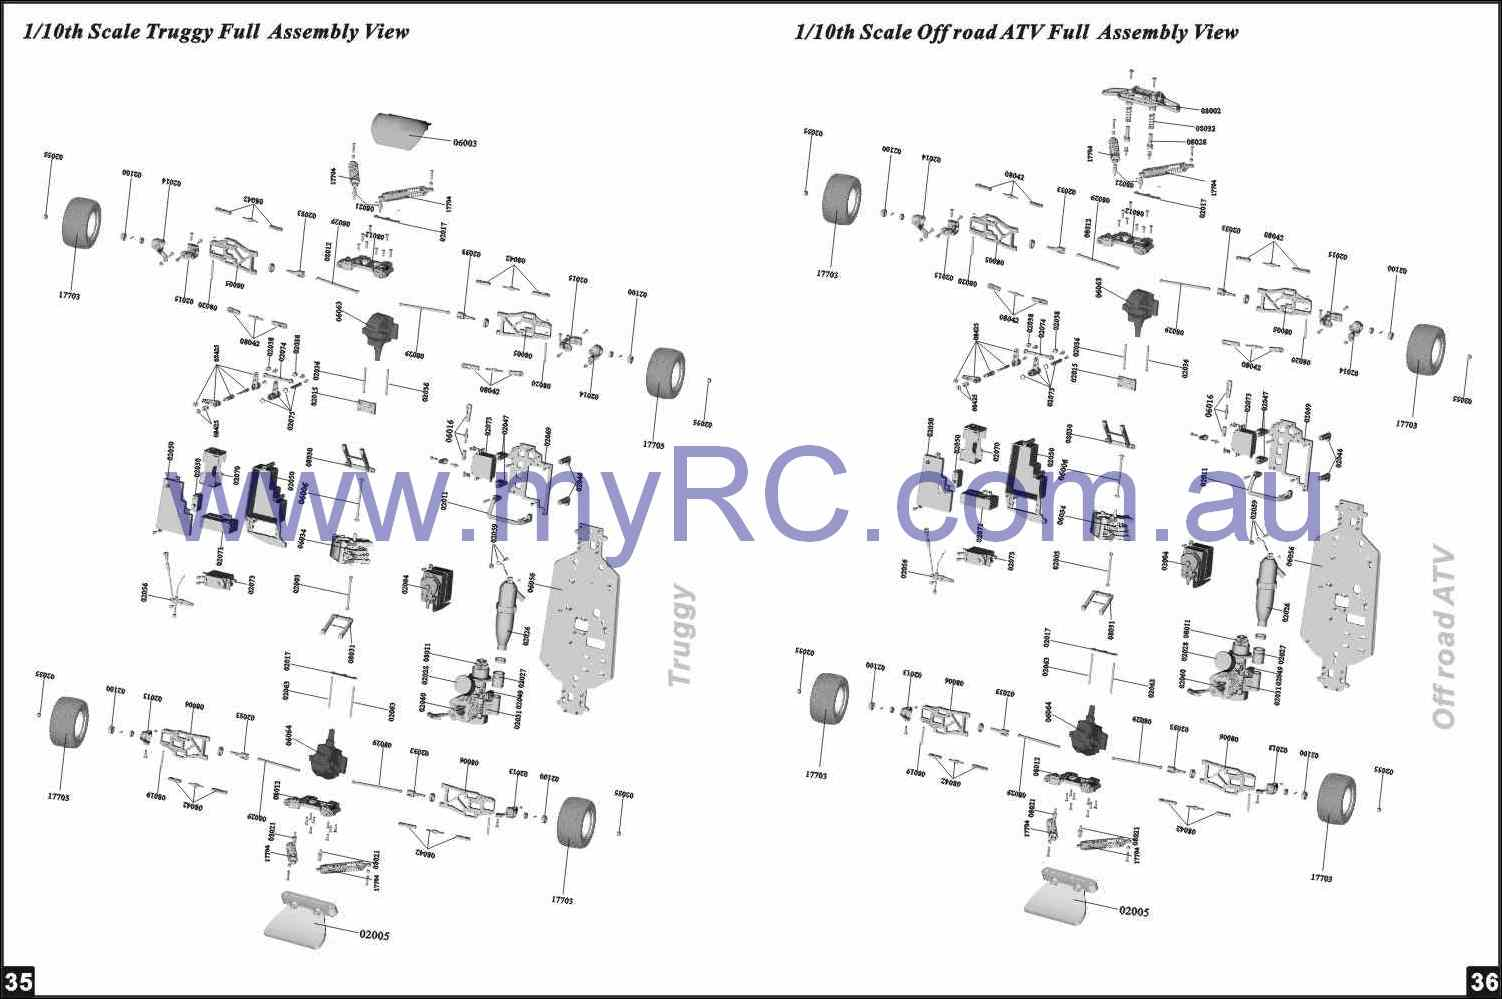 Rc 10 Wiring Diagram - Free Vehicle Wiring Diagrams •